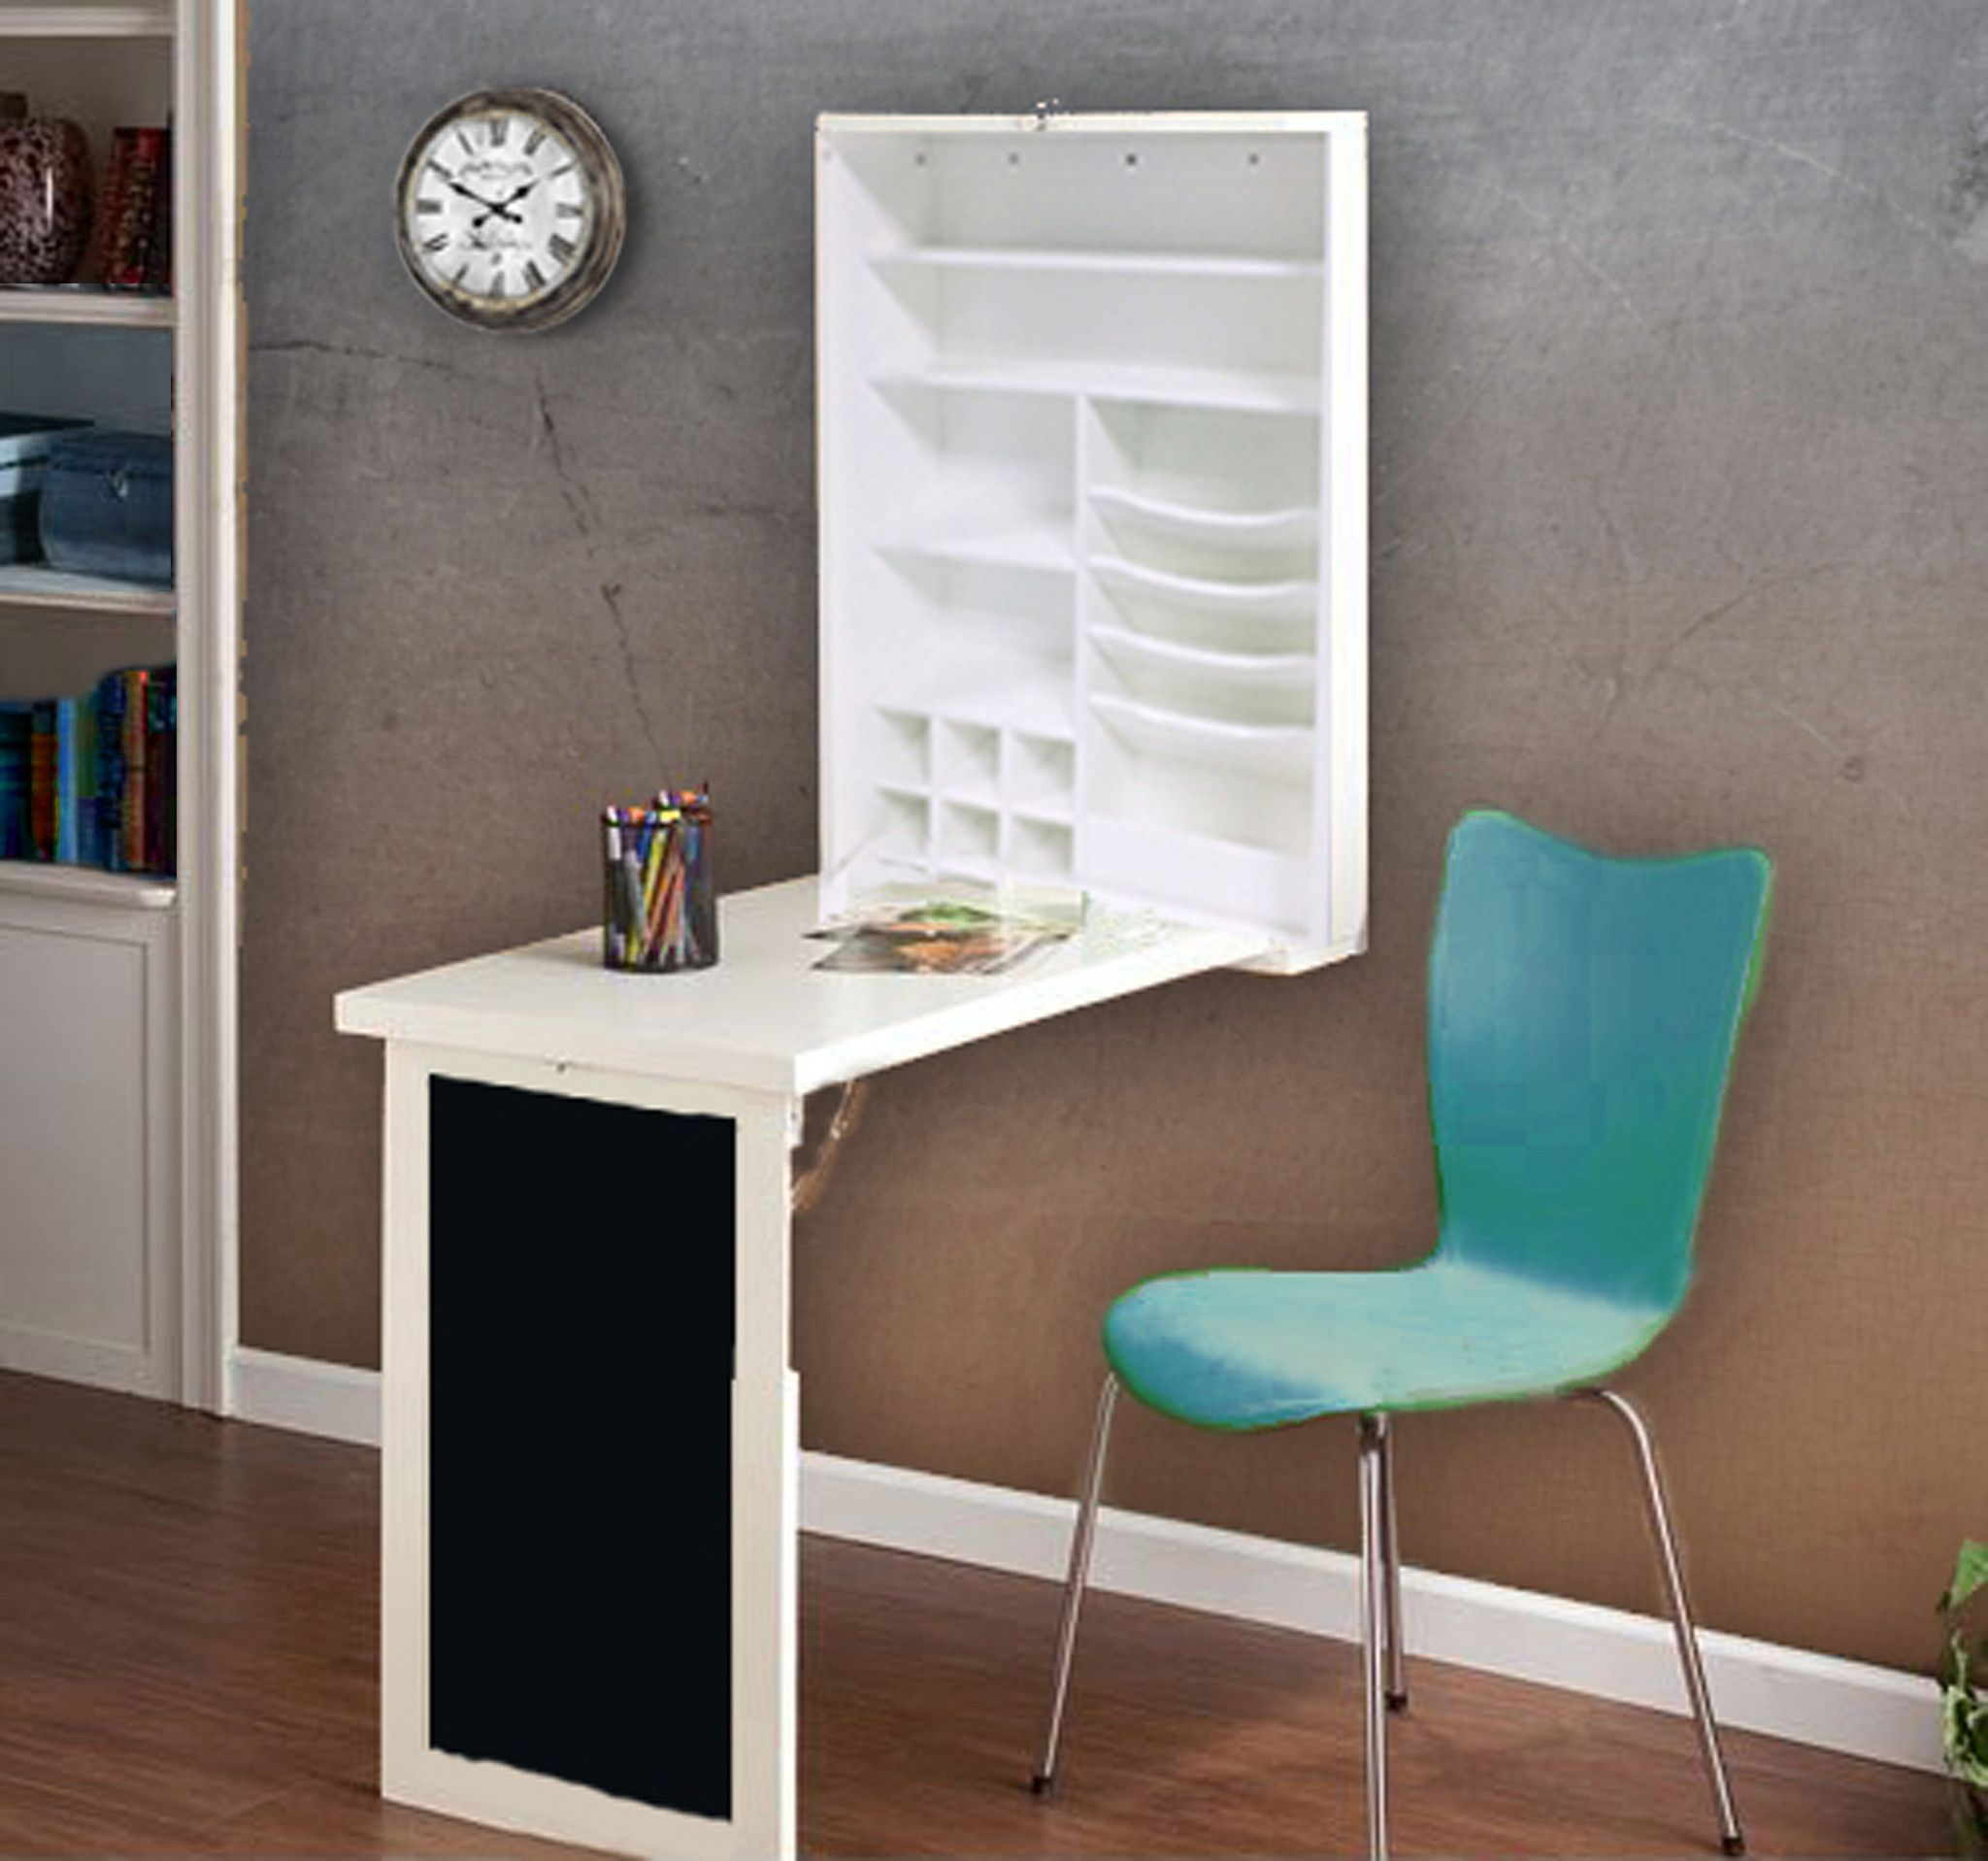 Fascinating F Down Desk Table Wall Cabinet Wall Cabinet Or Teen F Out Chair Bed Or Espresso Alley F Down Desk Table furniture Teen Fold Out Chair